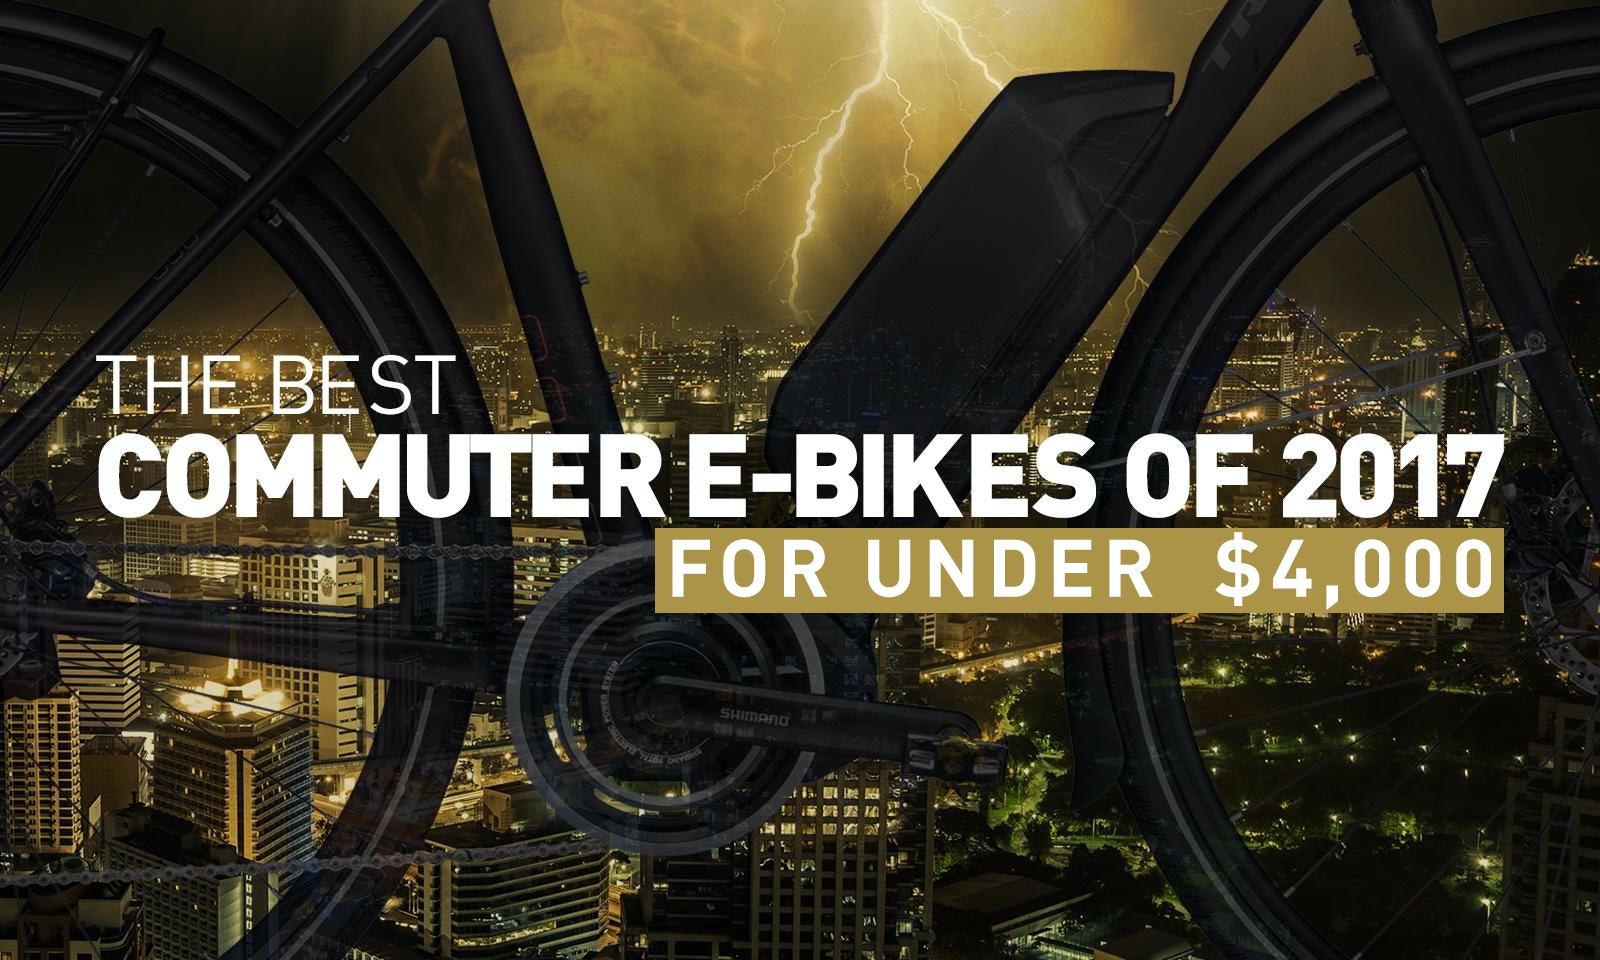 Best Commuter E-Bikes of 2017 for Under $4,000